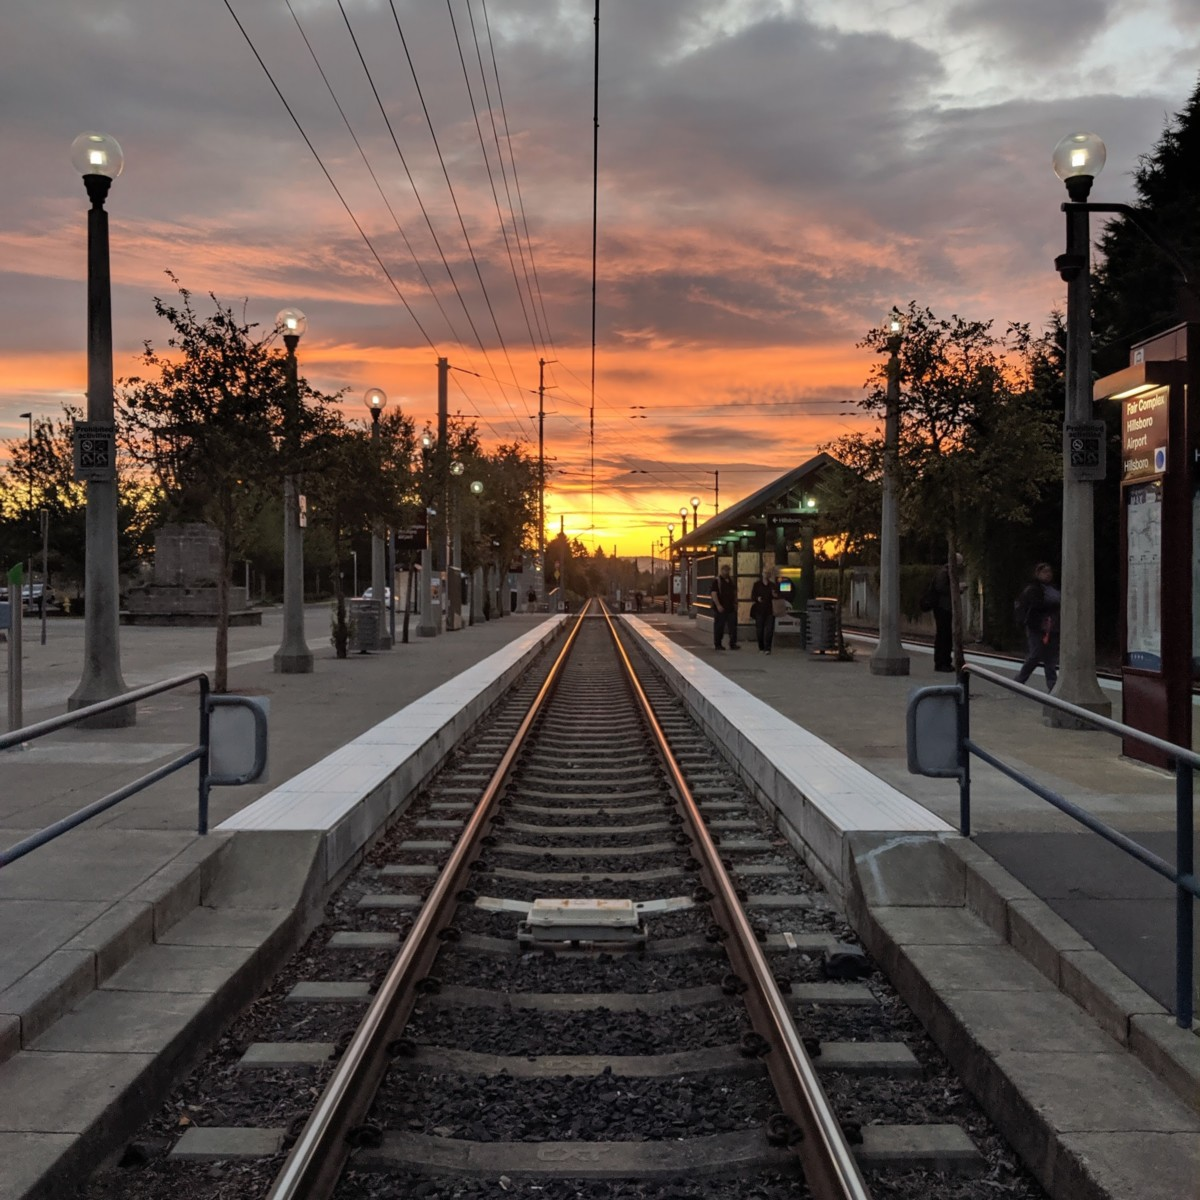 Sunrise at the MAX stop